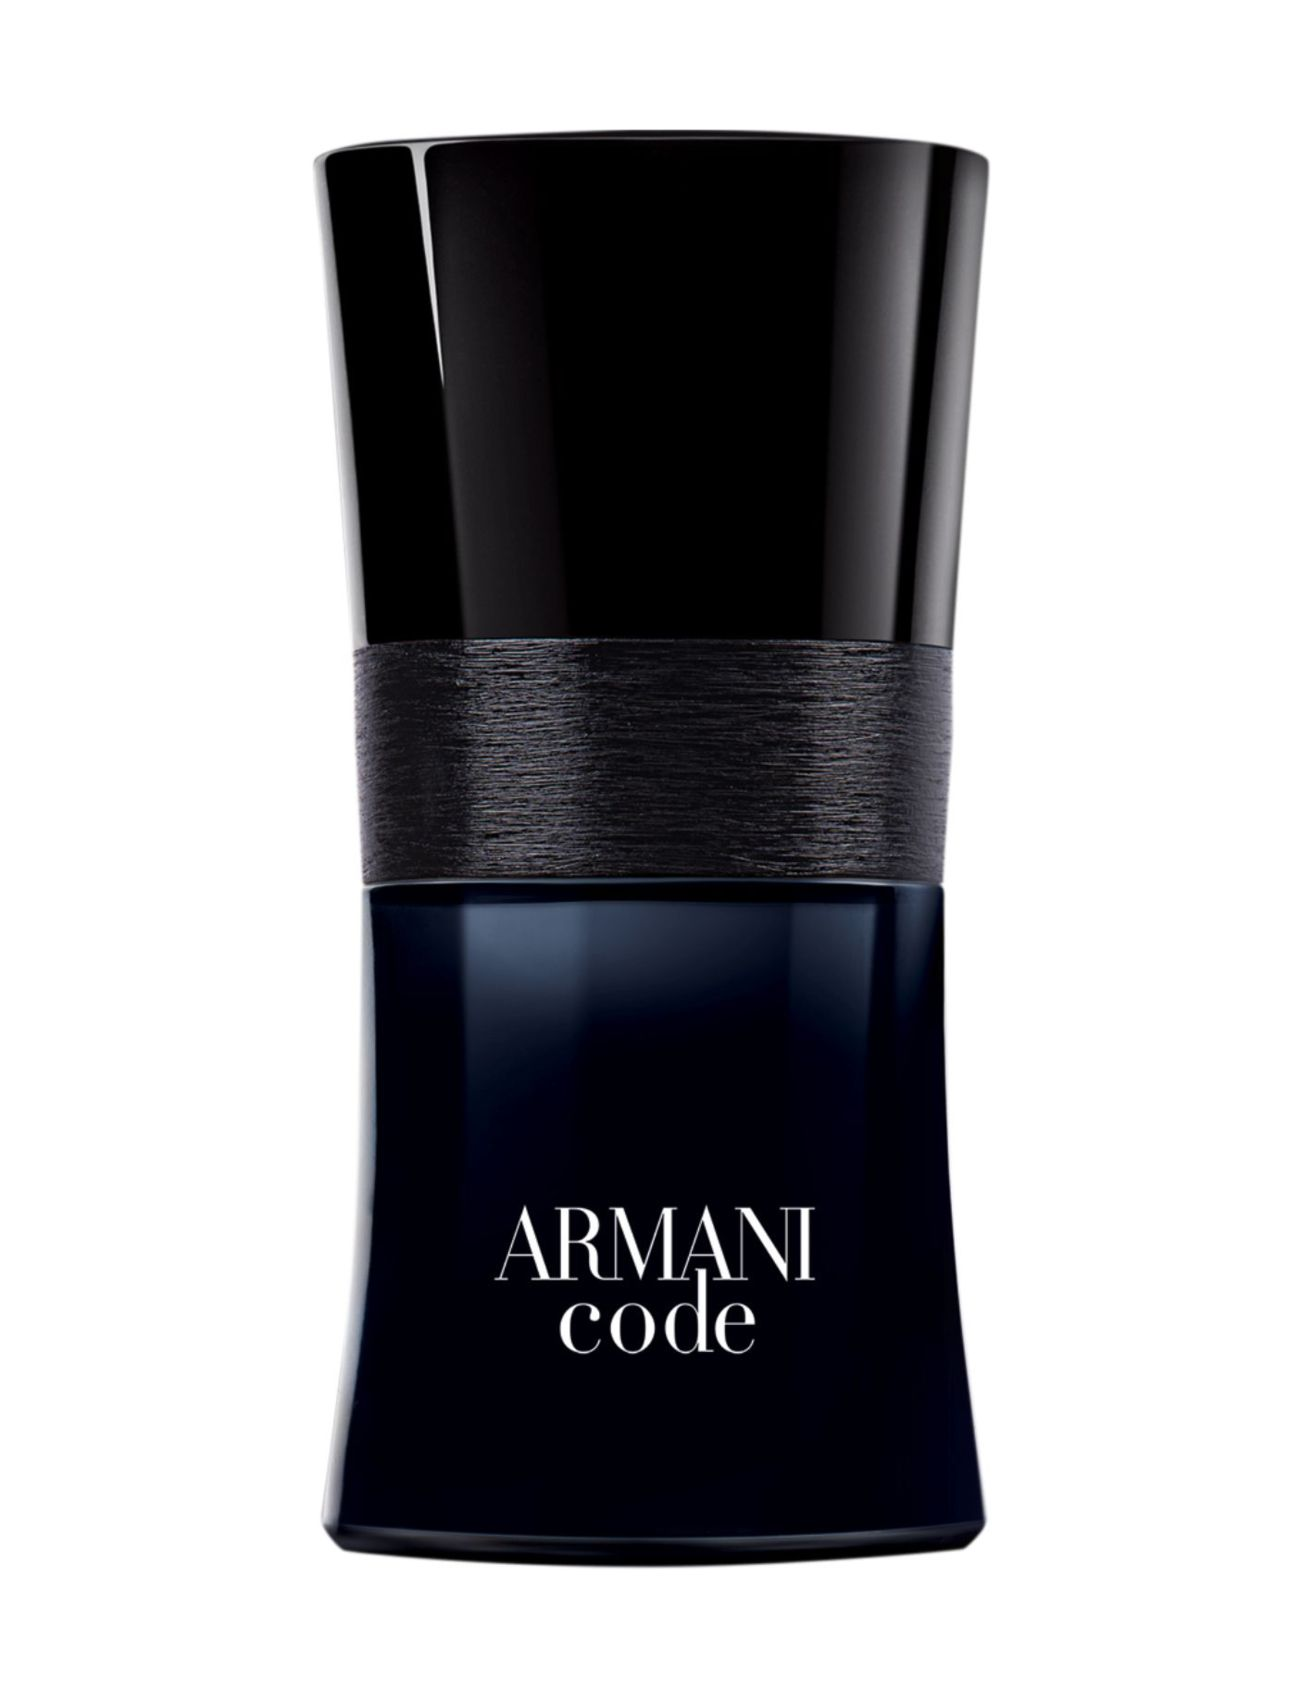 Giorgio Armani Armani Code Men Eau de Toilette 30 ml - NO COLOR CODE